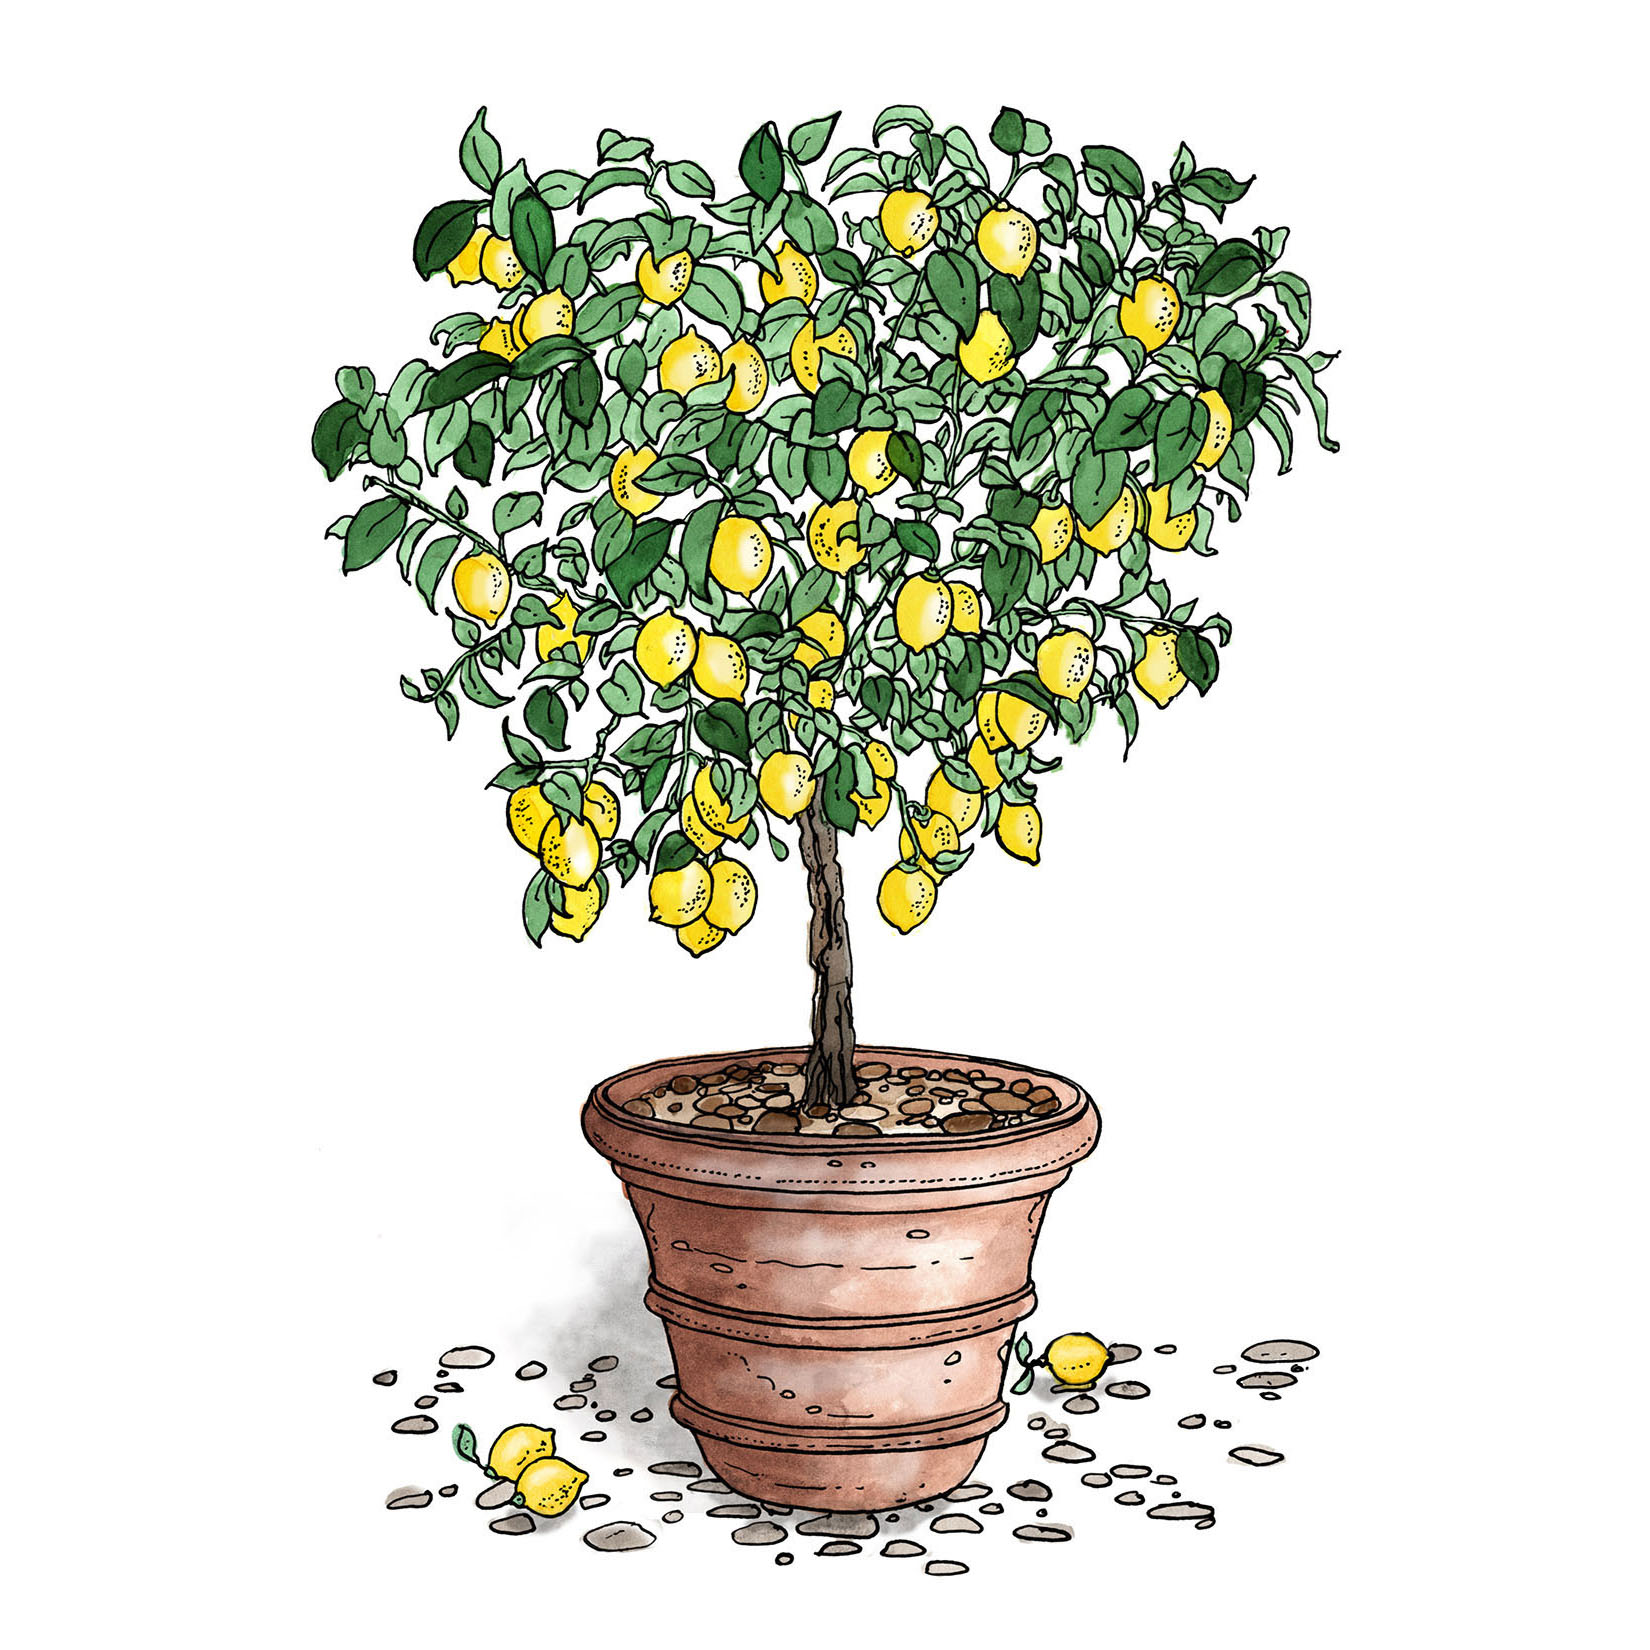 illustration of a lemon tree